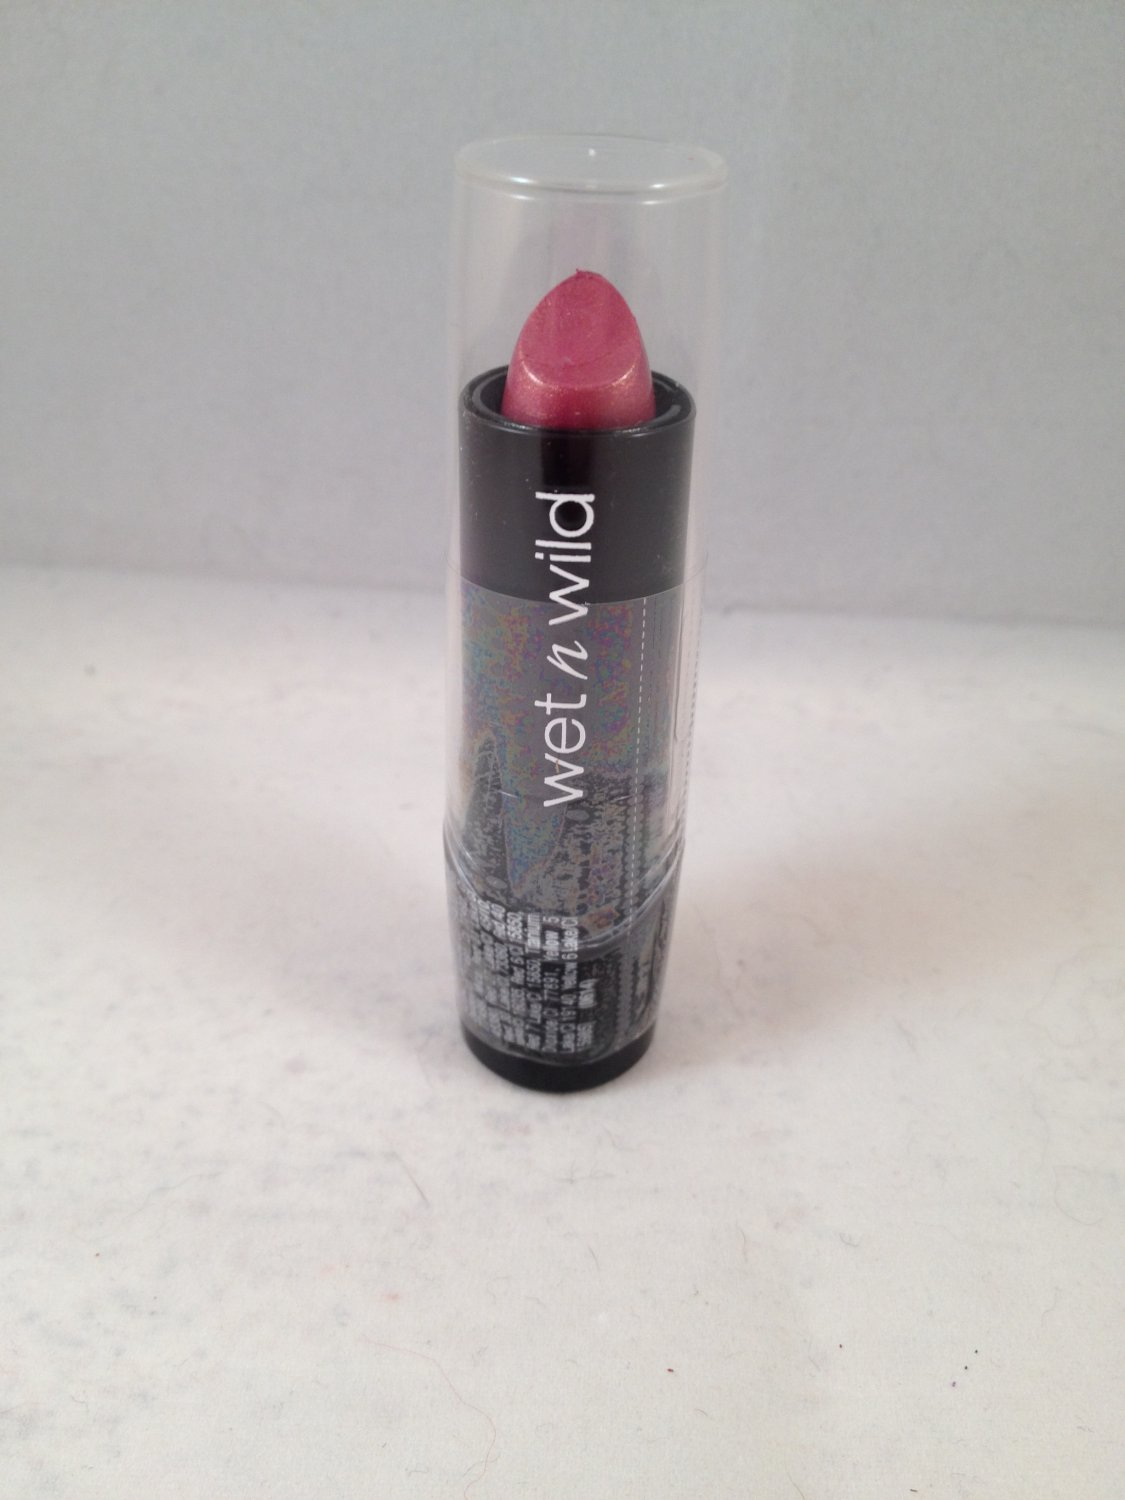 Wet n Wild Silk Finish Lipstick #530D Dark Pink Frost